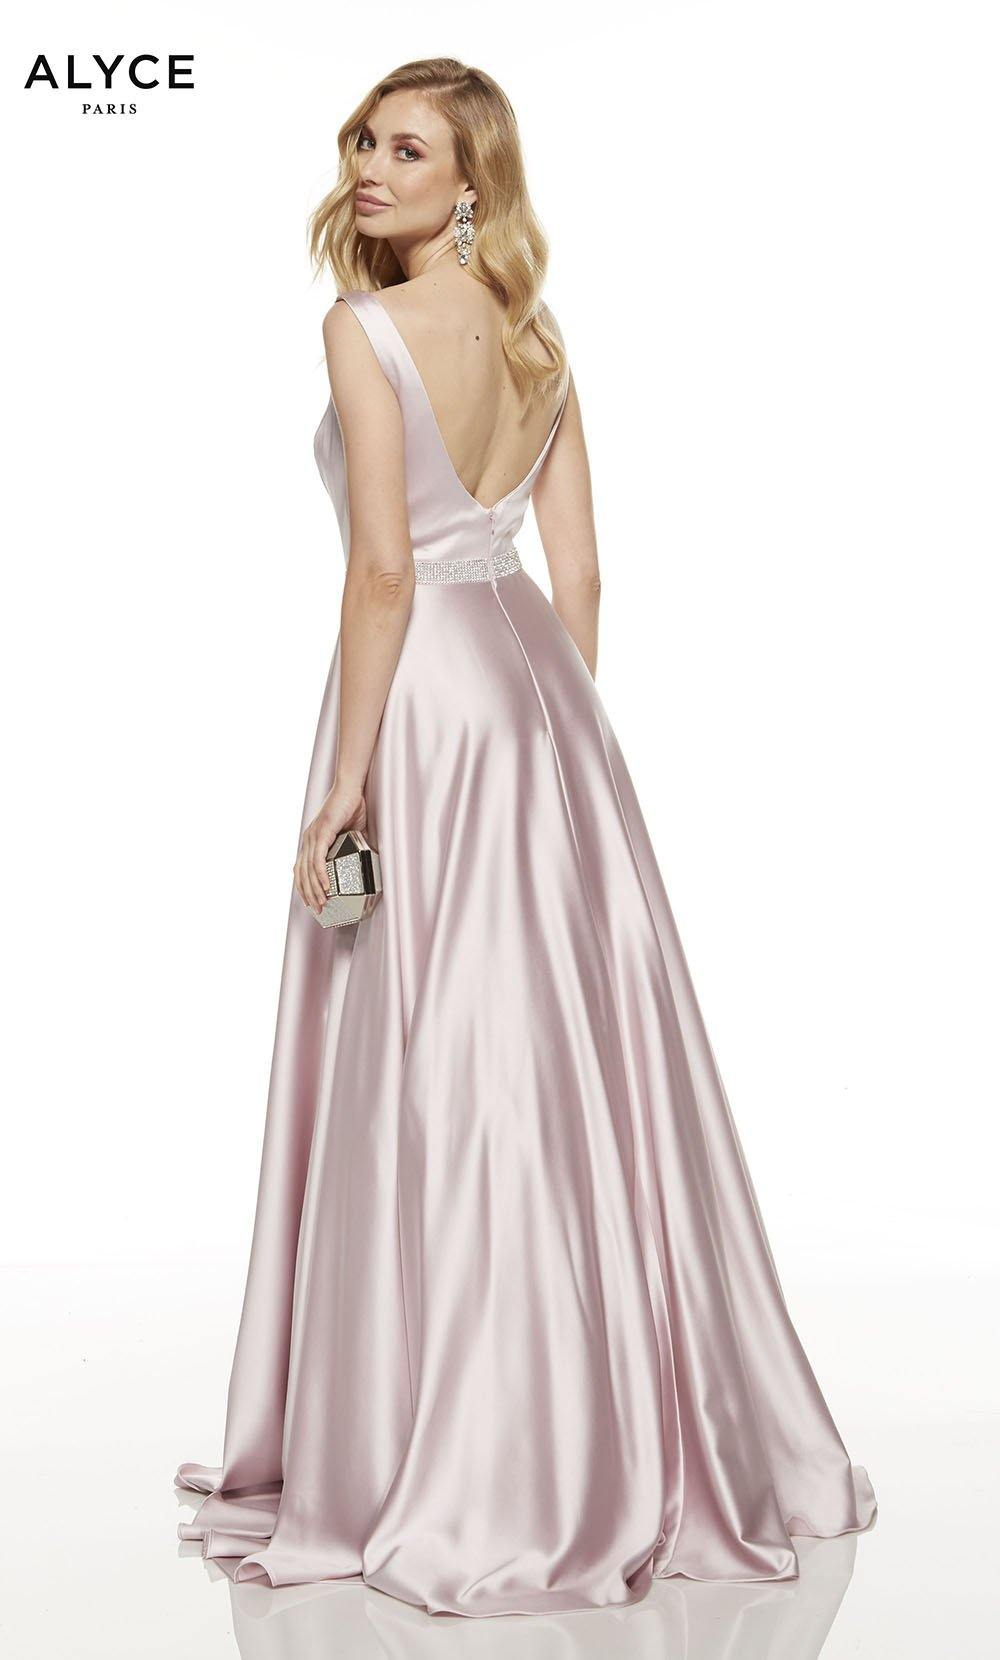 Chalk pink formal dress with a v-shaped back